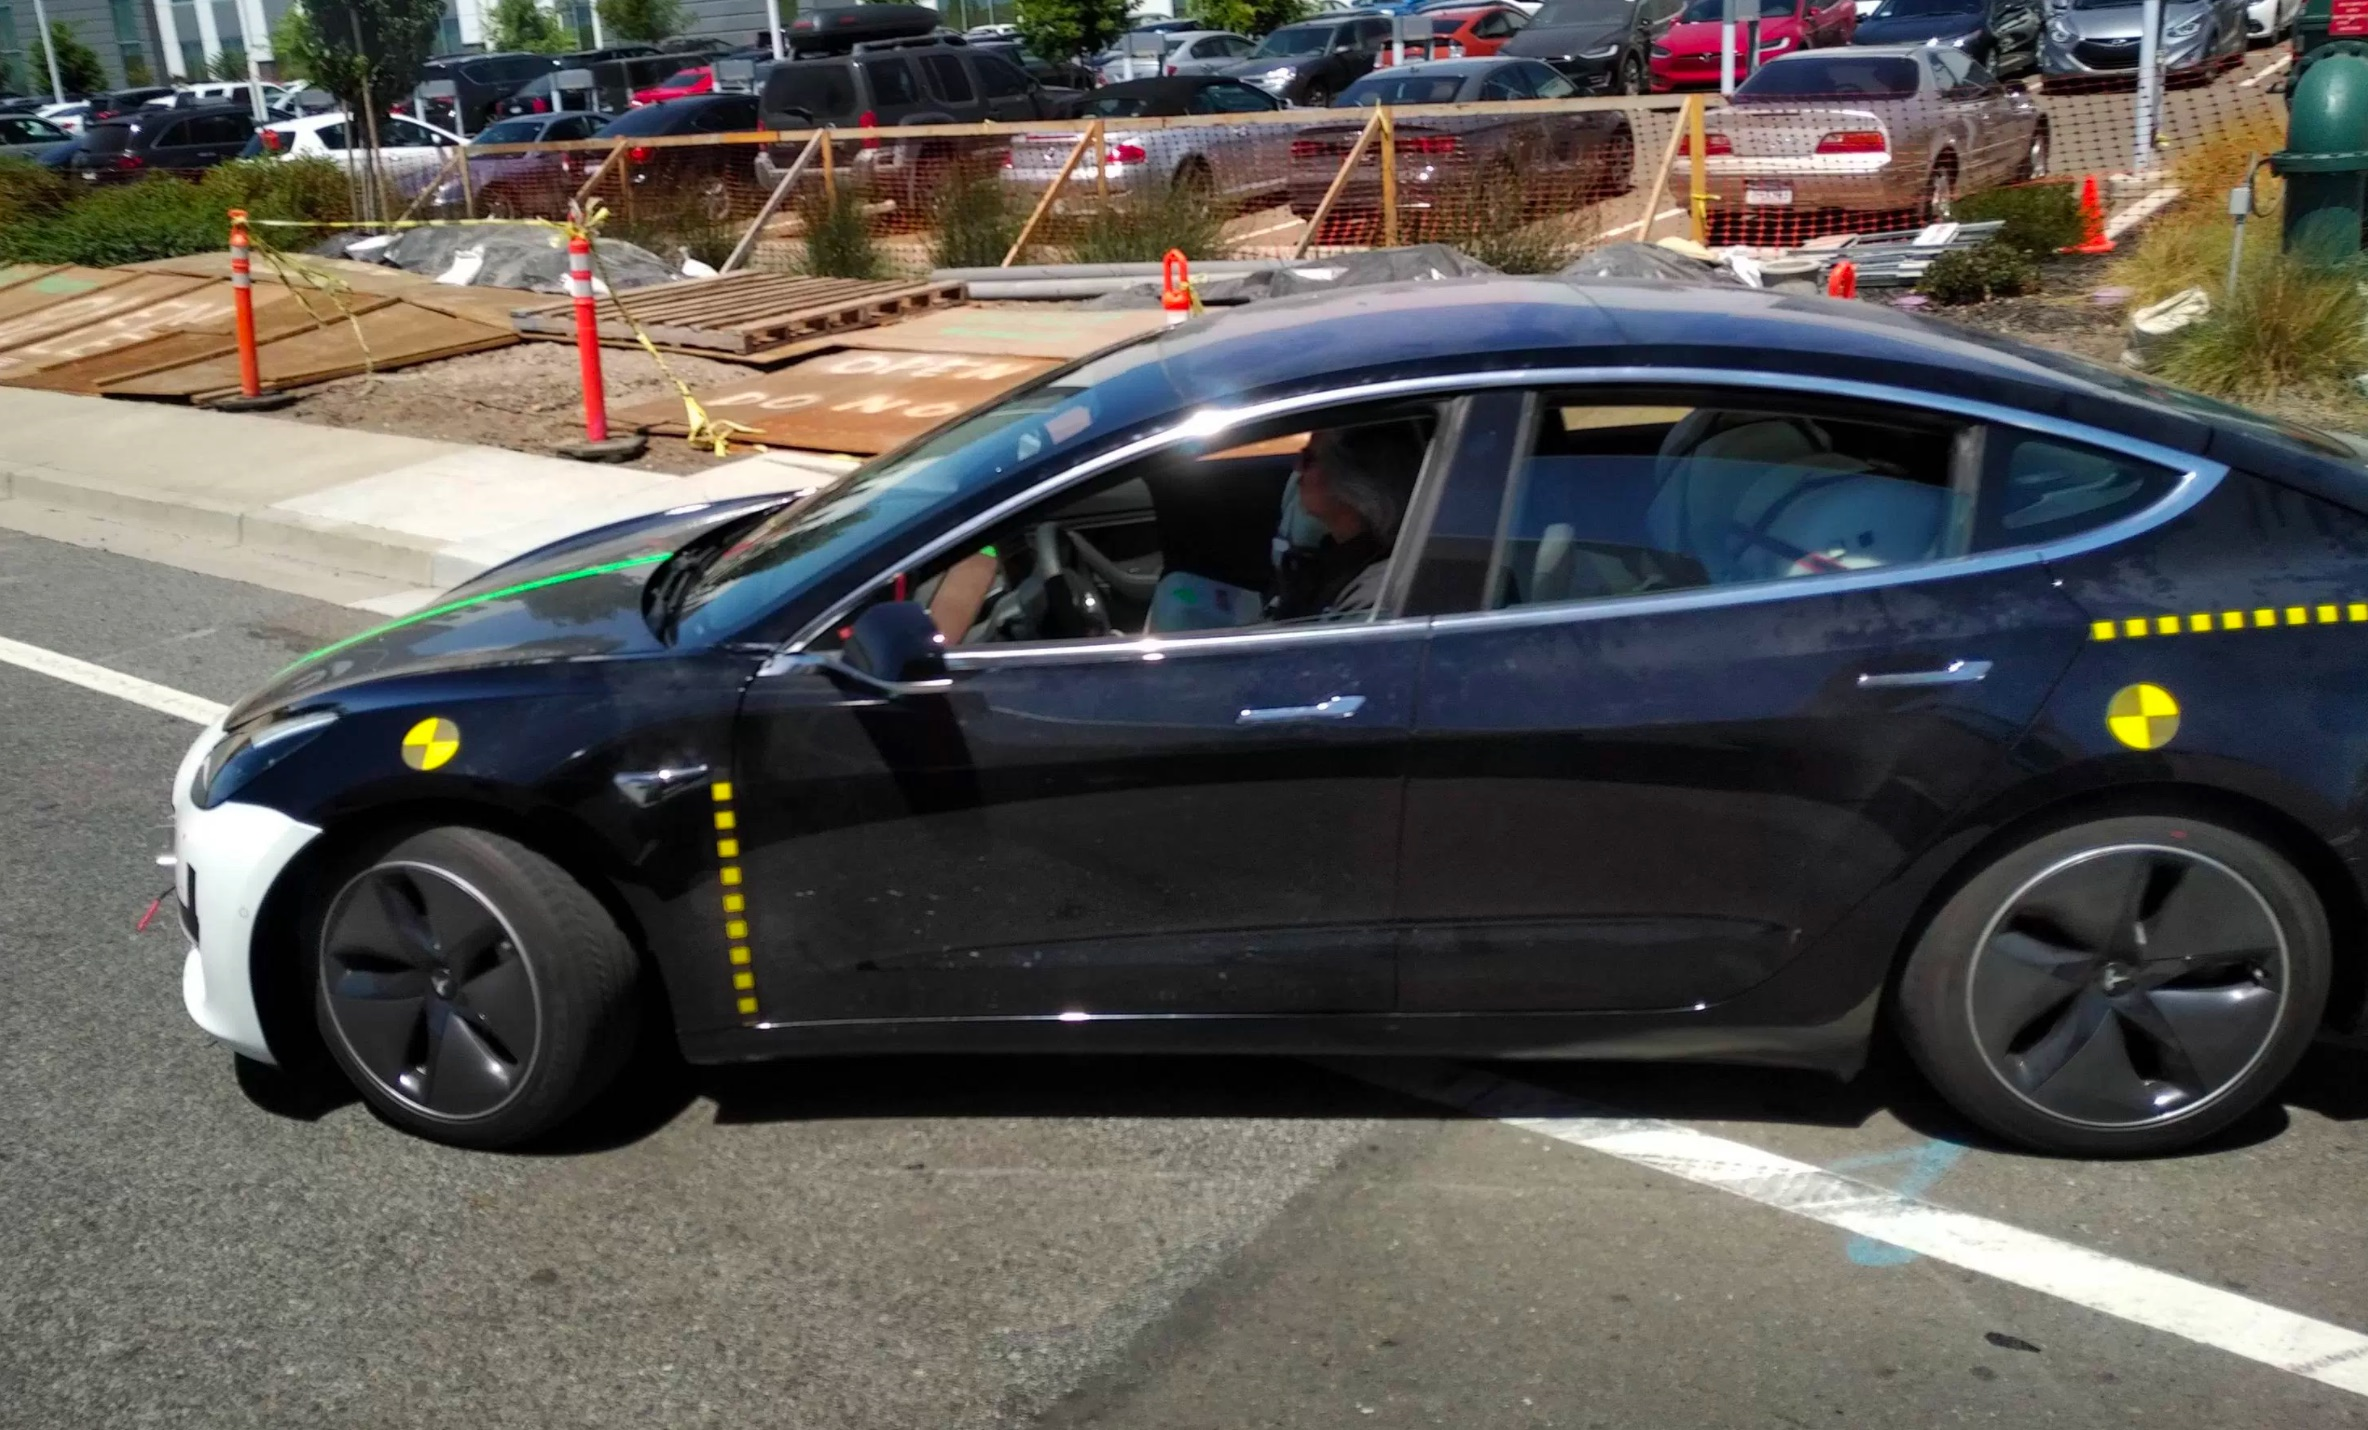 Insurance Cars For Sale Near Me: Tesla Model 3's Body Structure Is A Strategic Blend Of